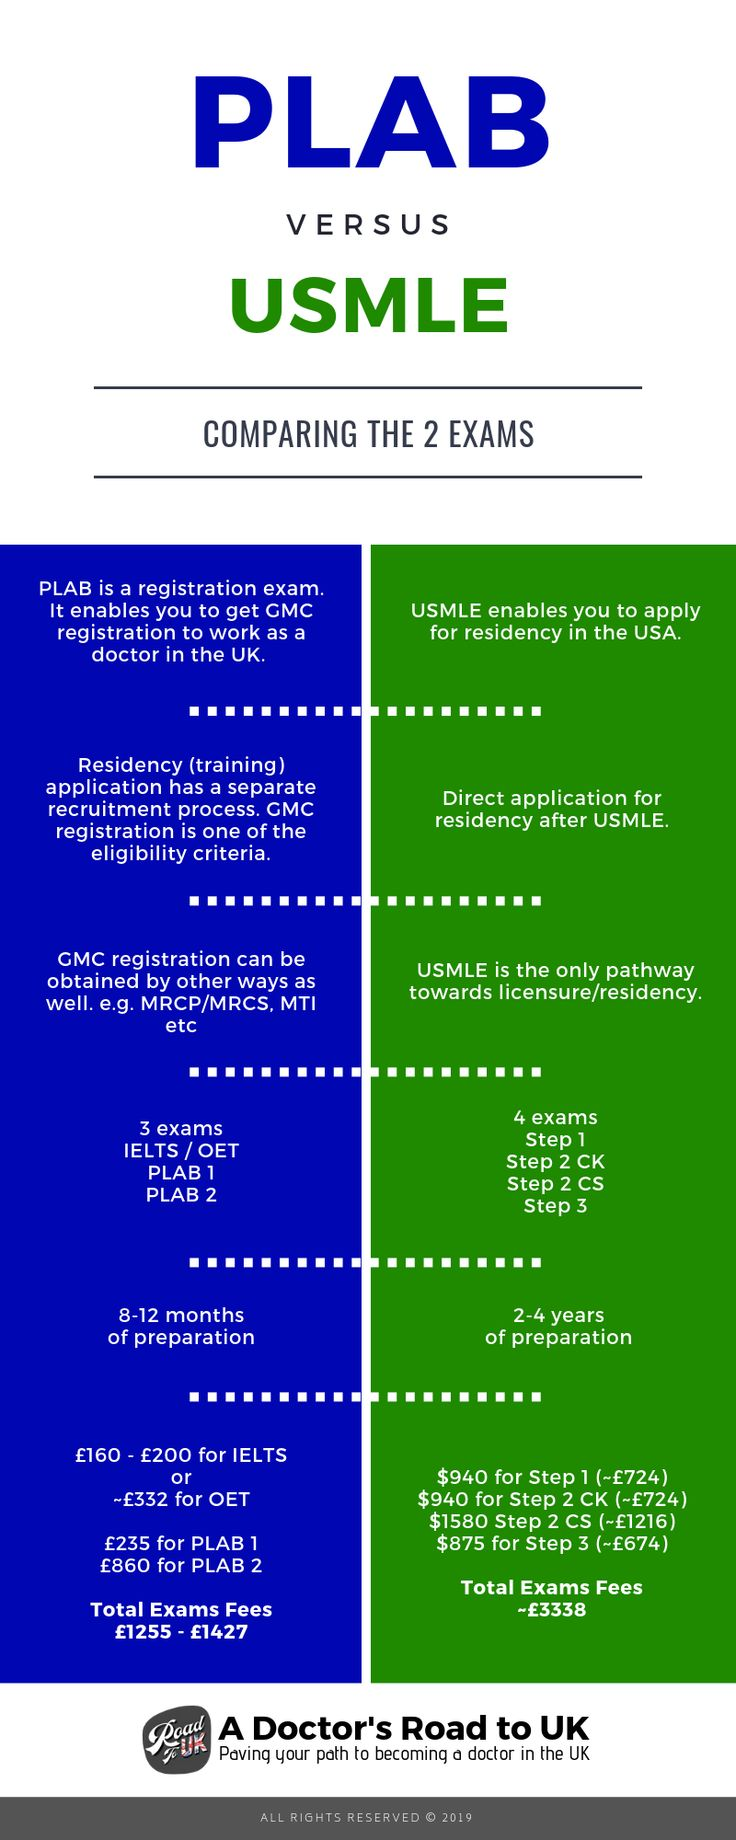 Plab Vs Usmle In 2020 Exam How To Apply How To Become